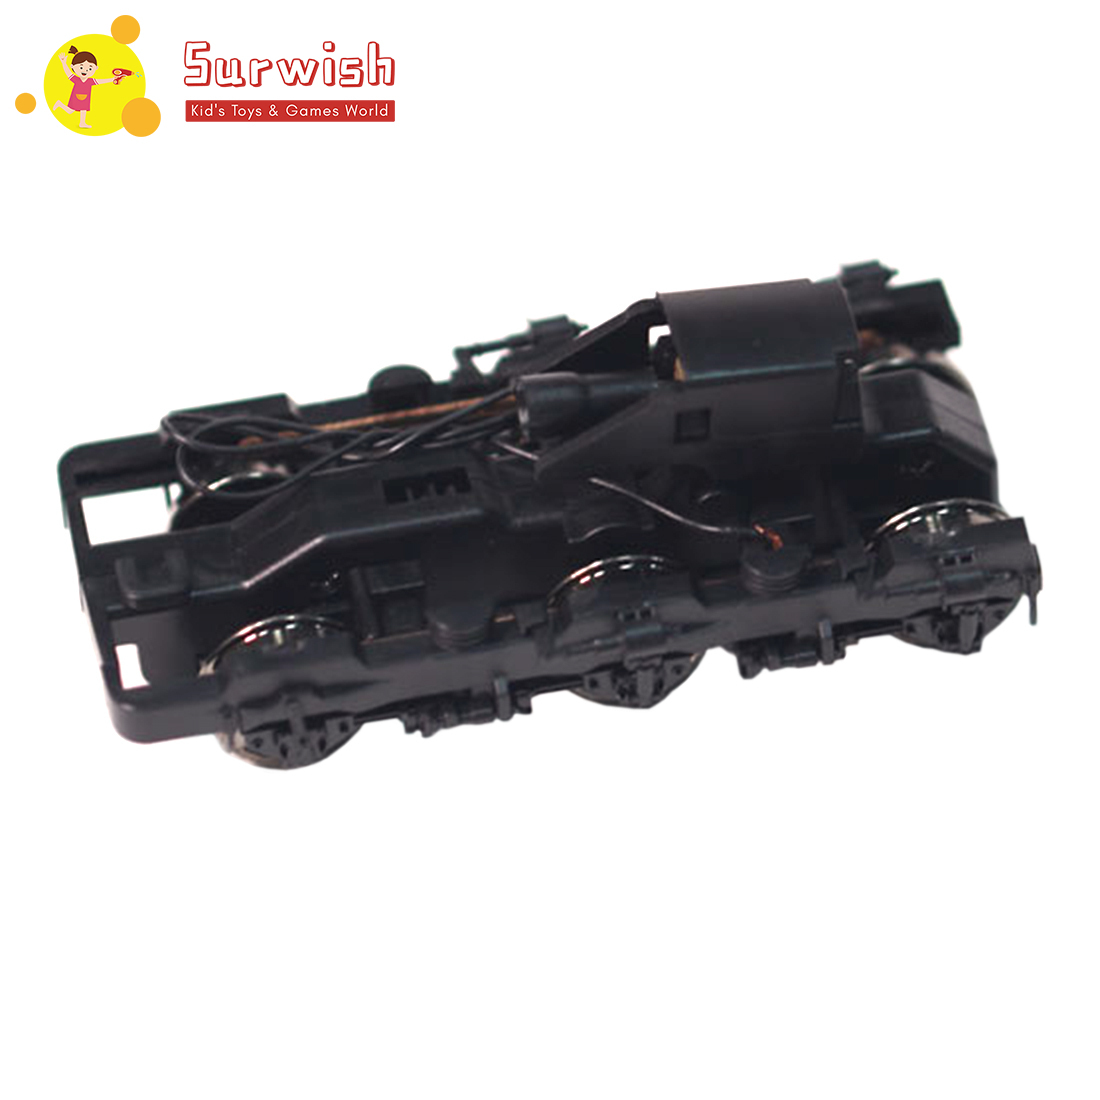 Surwish 2.8 X 6.8cm 1:87 Ho Scale Railway Layou Undercarriage Bogie For Most Ho Scale Model Train Model Building Kits Hot